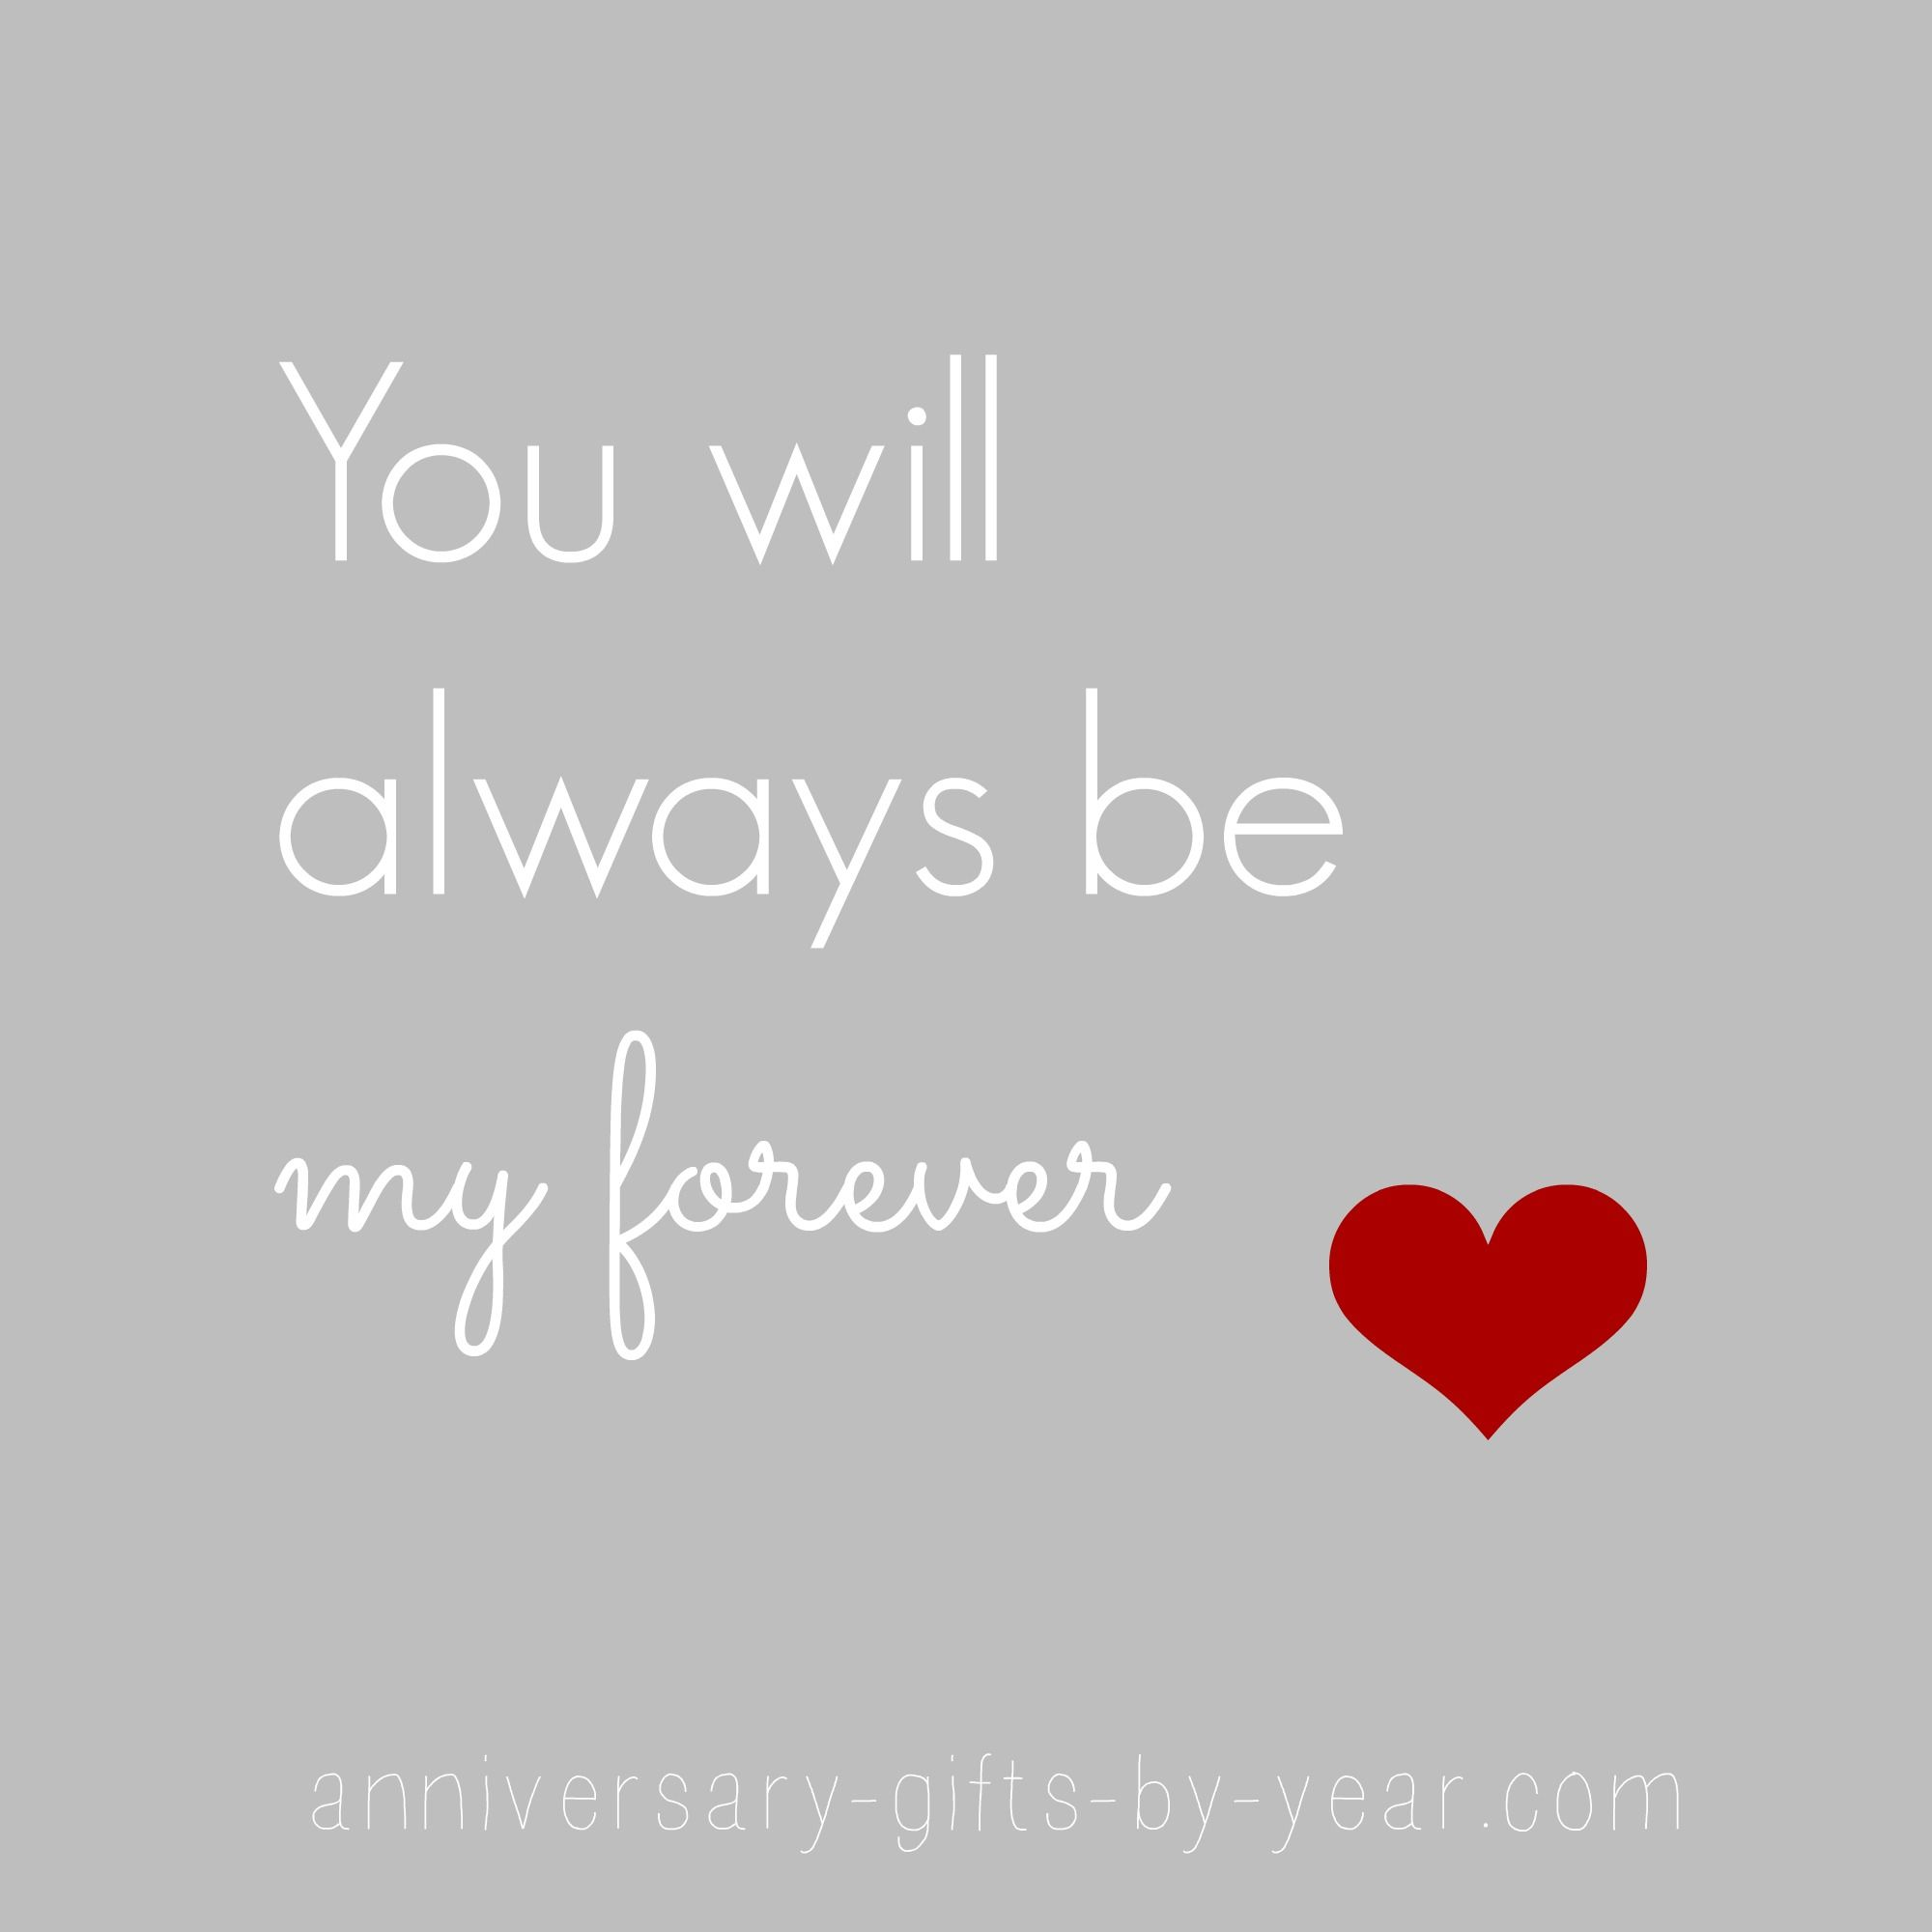 Love Anniversary Quotes Anniversary Quotes   Perfect For Anniversary Cards and Speeches  Love Anniversary Quotes